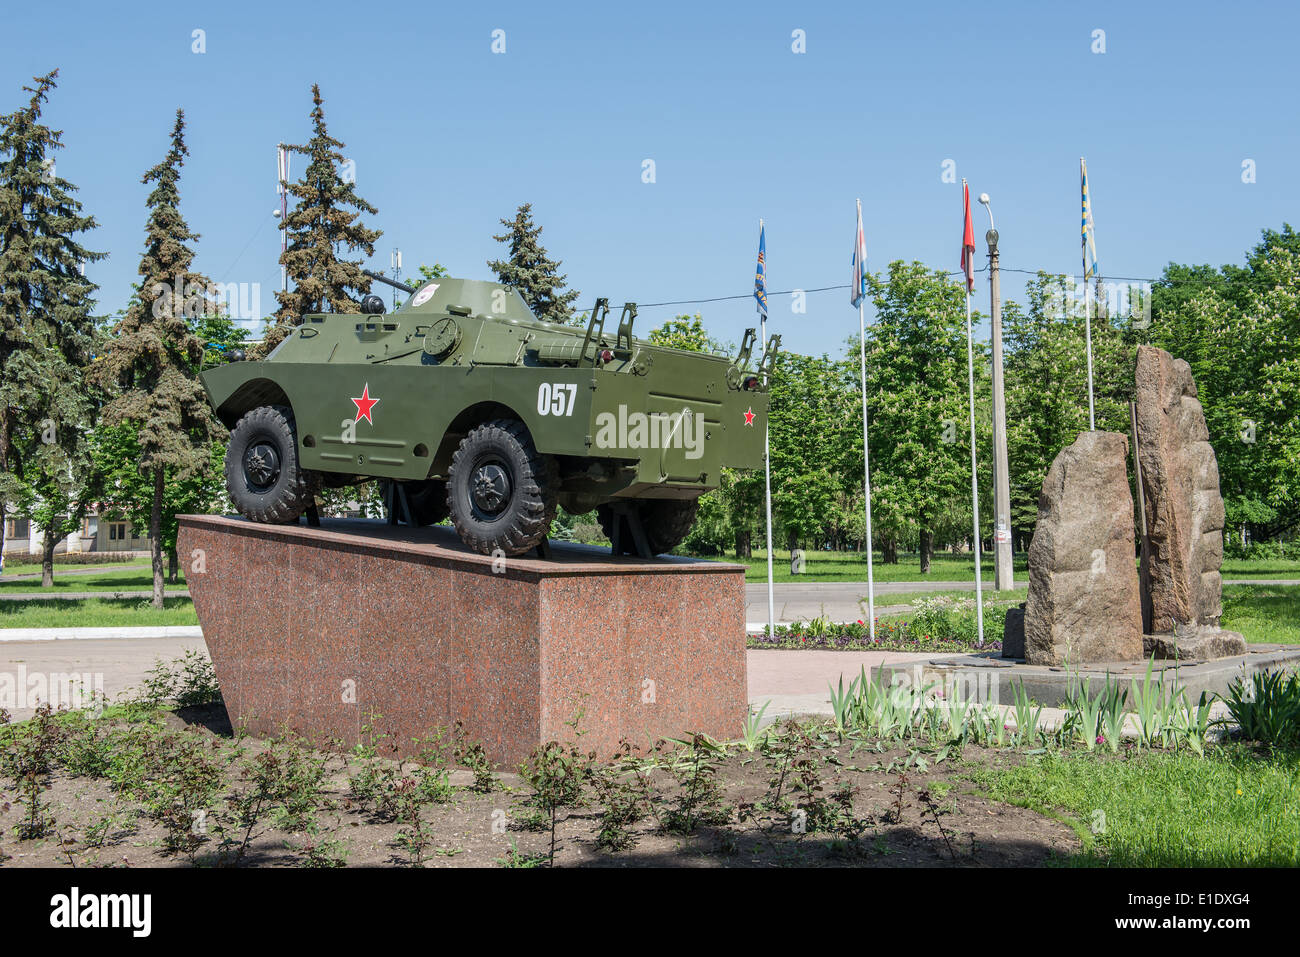 Soviet APC military vehicle as a monument in Petrovs'kyi district , Donetsk, Ukraine - Stock Image